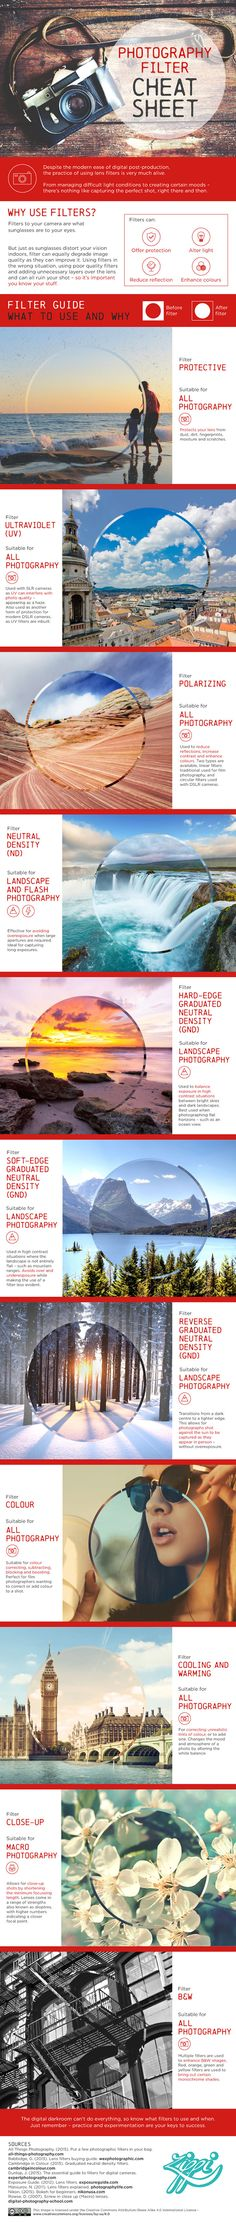 photography-filter-cheat-sheet-final